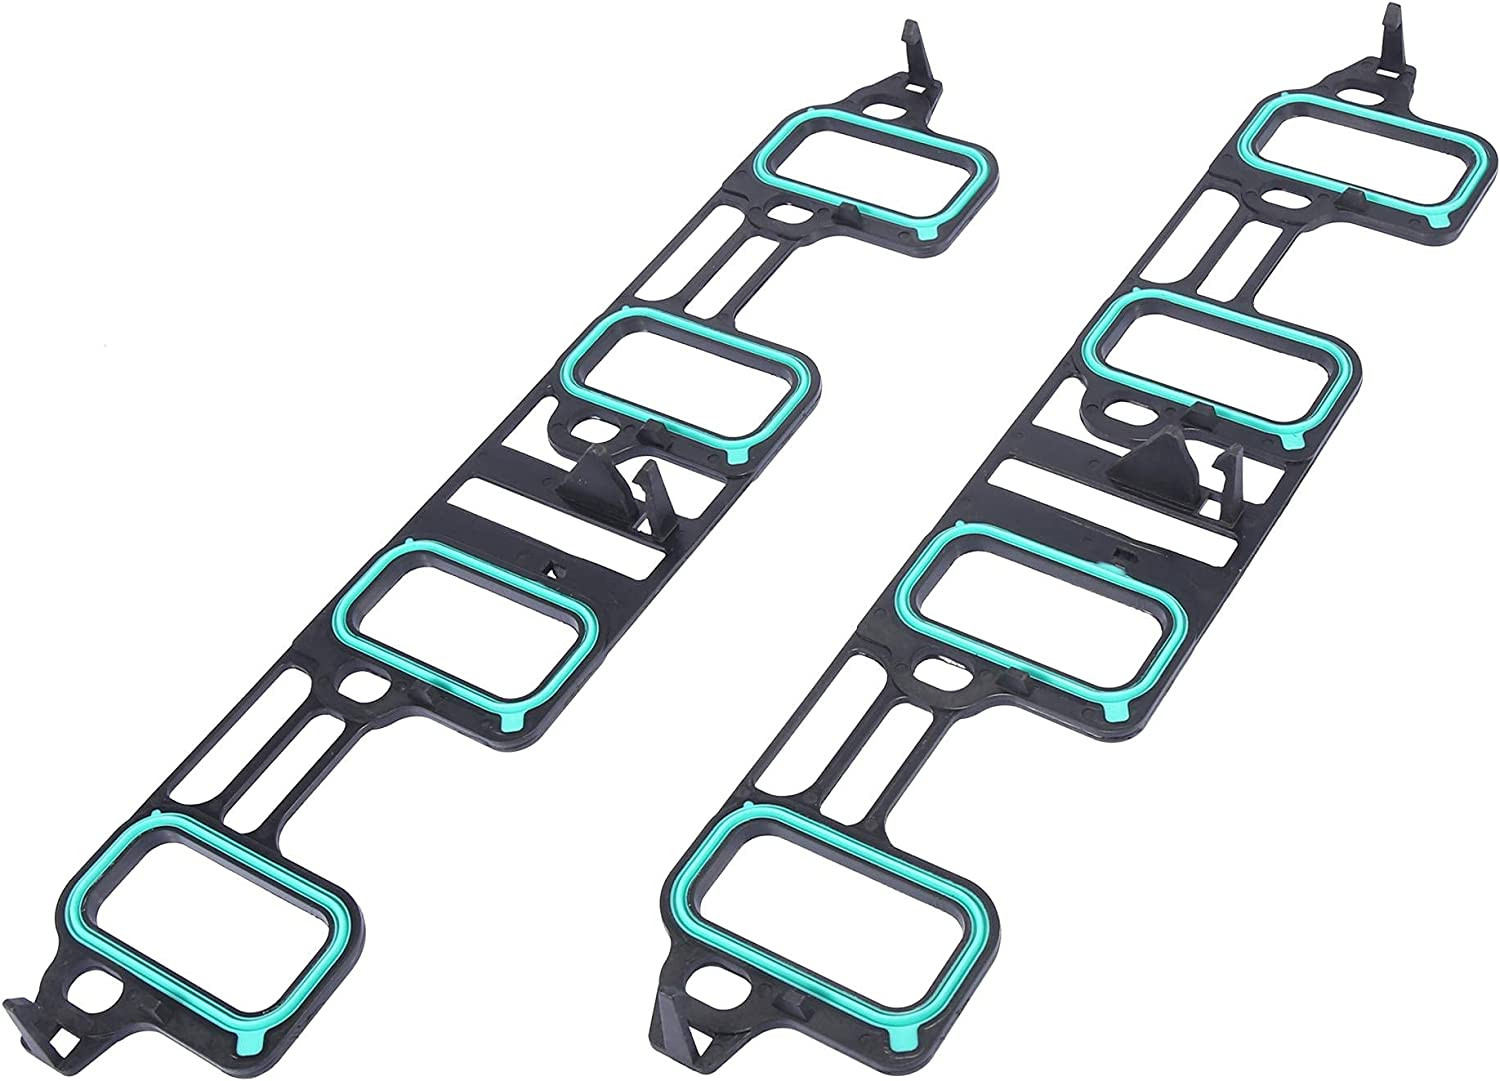 X AUTOHAUX 2pcs 2021 MS19598 Car Engine for GM Max 77% OFF Gasket Manifold Intake